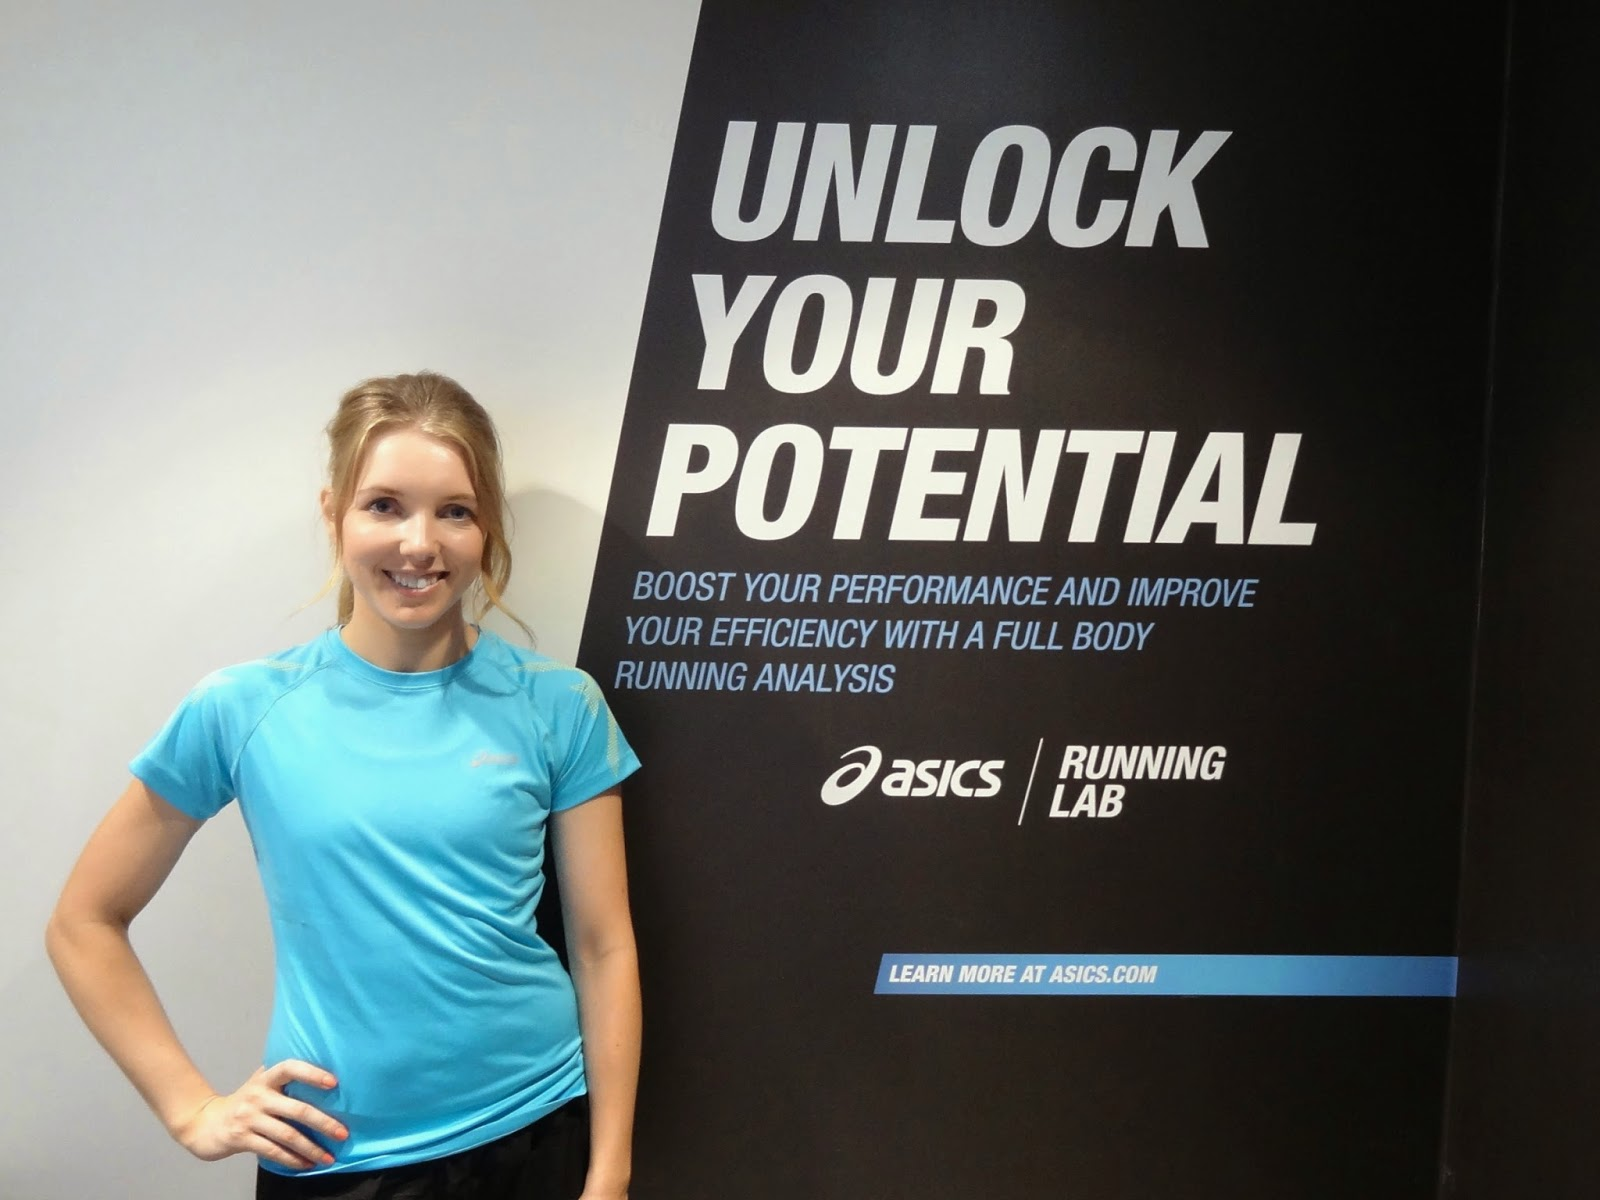 Asics_Lab_Unlock_Your_Potential.jpg